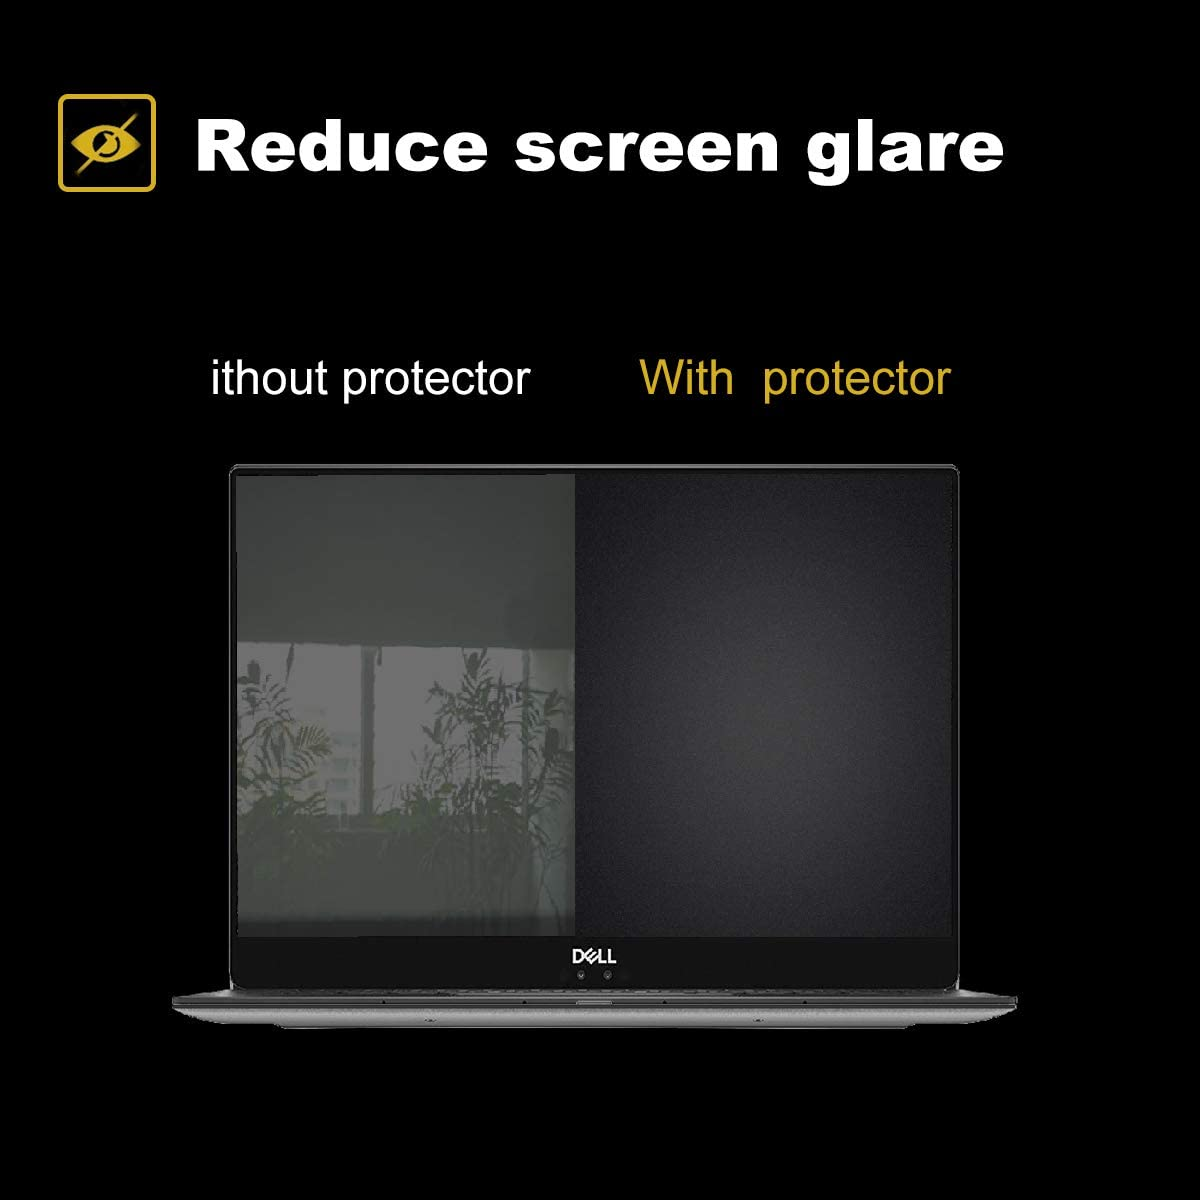 Eyes Protection Filter Reduces Eye Strain Help You Sleep Better ...